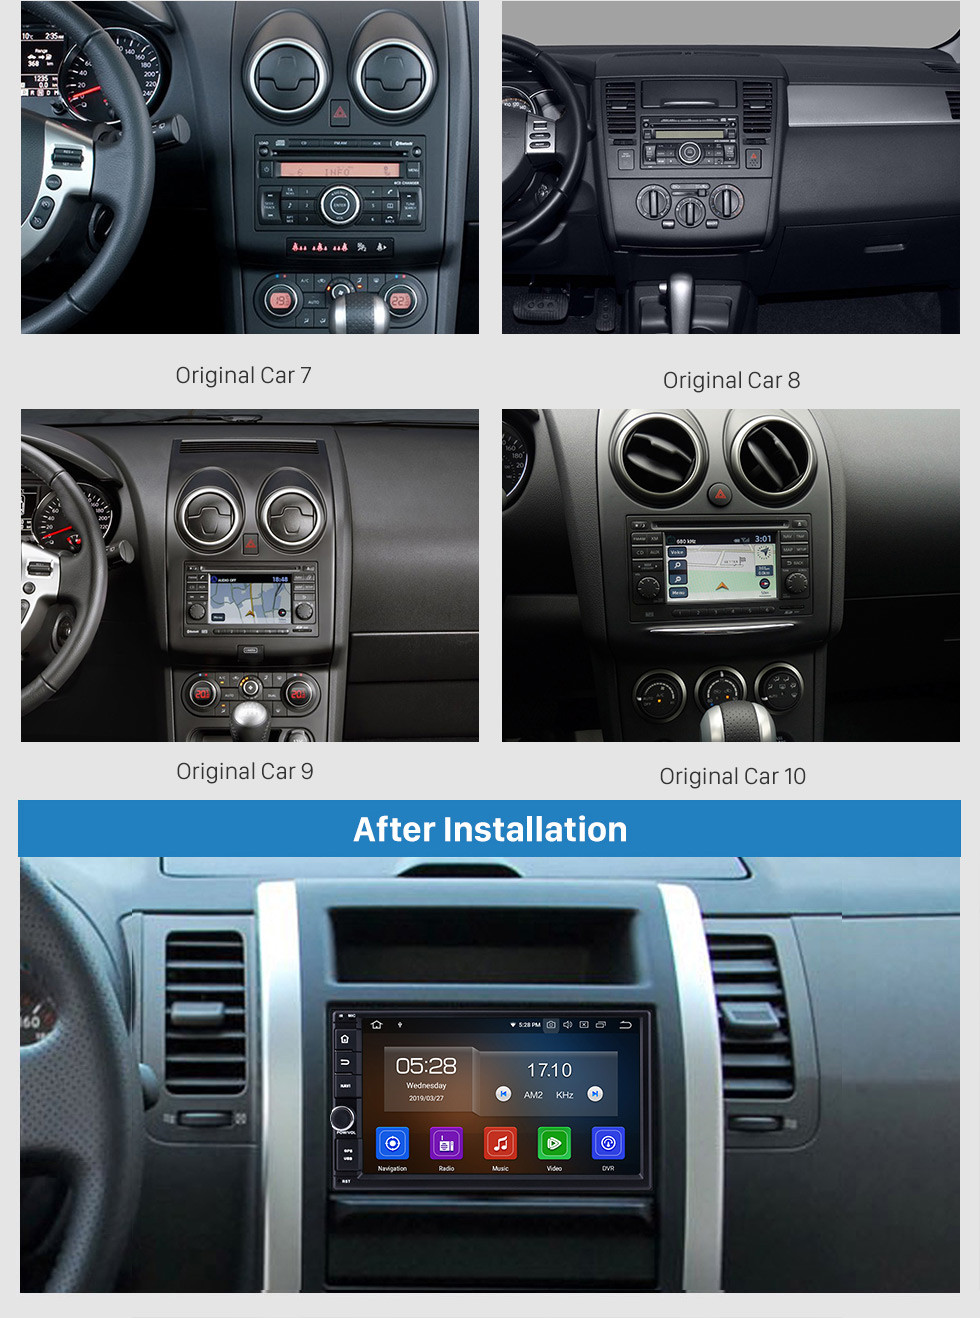 Seicane Aftermarket Android 9.0 GPS Navigation System for 2004-2009 Kia sportage Radio Upgrade with Bluetooth Music DVD Player Car Stereo Touch Screen WiFi Mirror Link OBD2 Steering Wheel Control